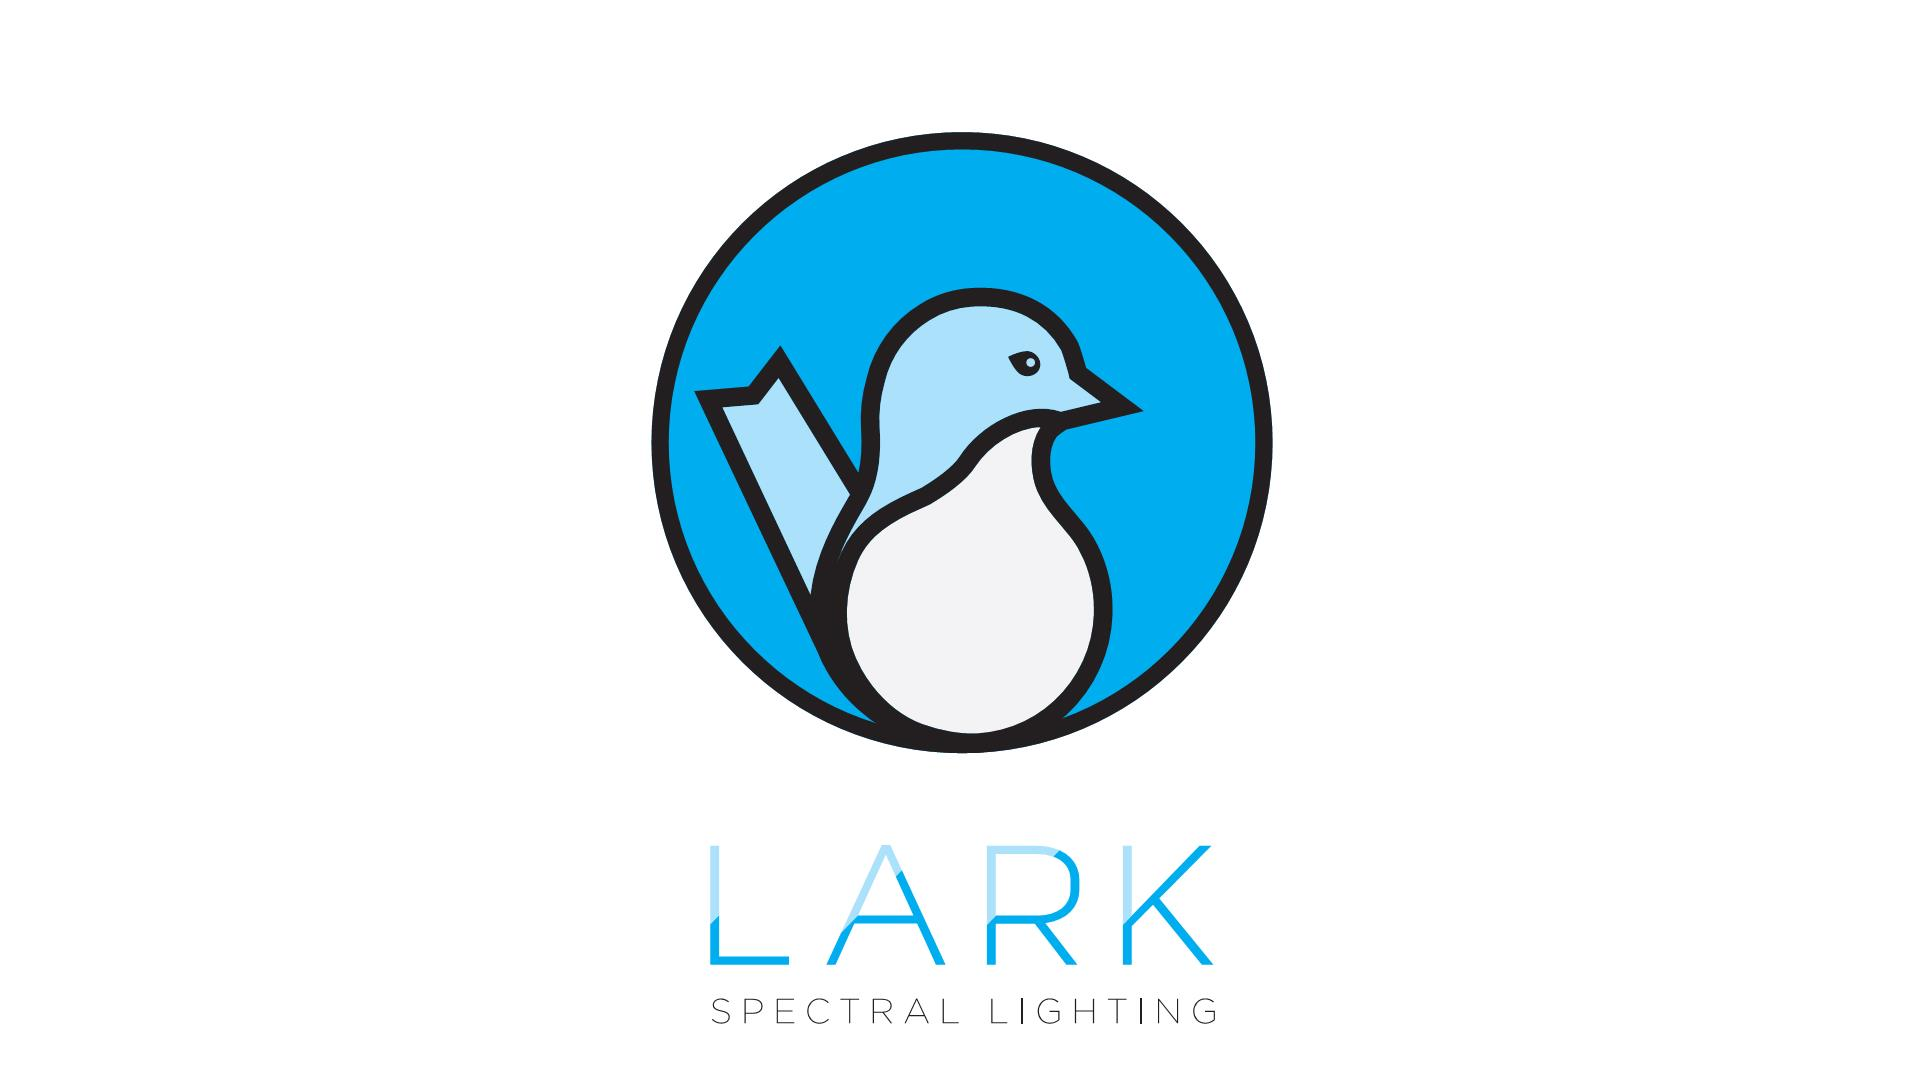 Lark Spectral Lighting